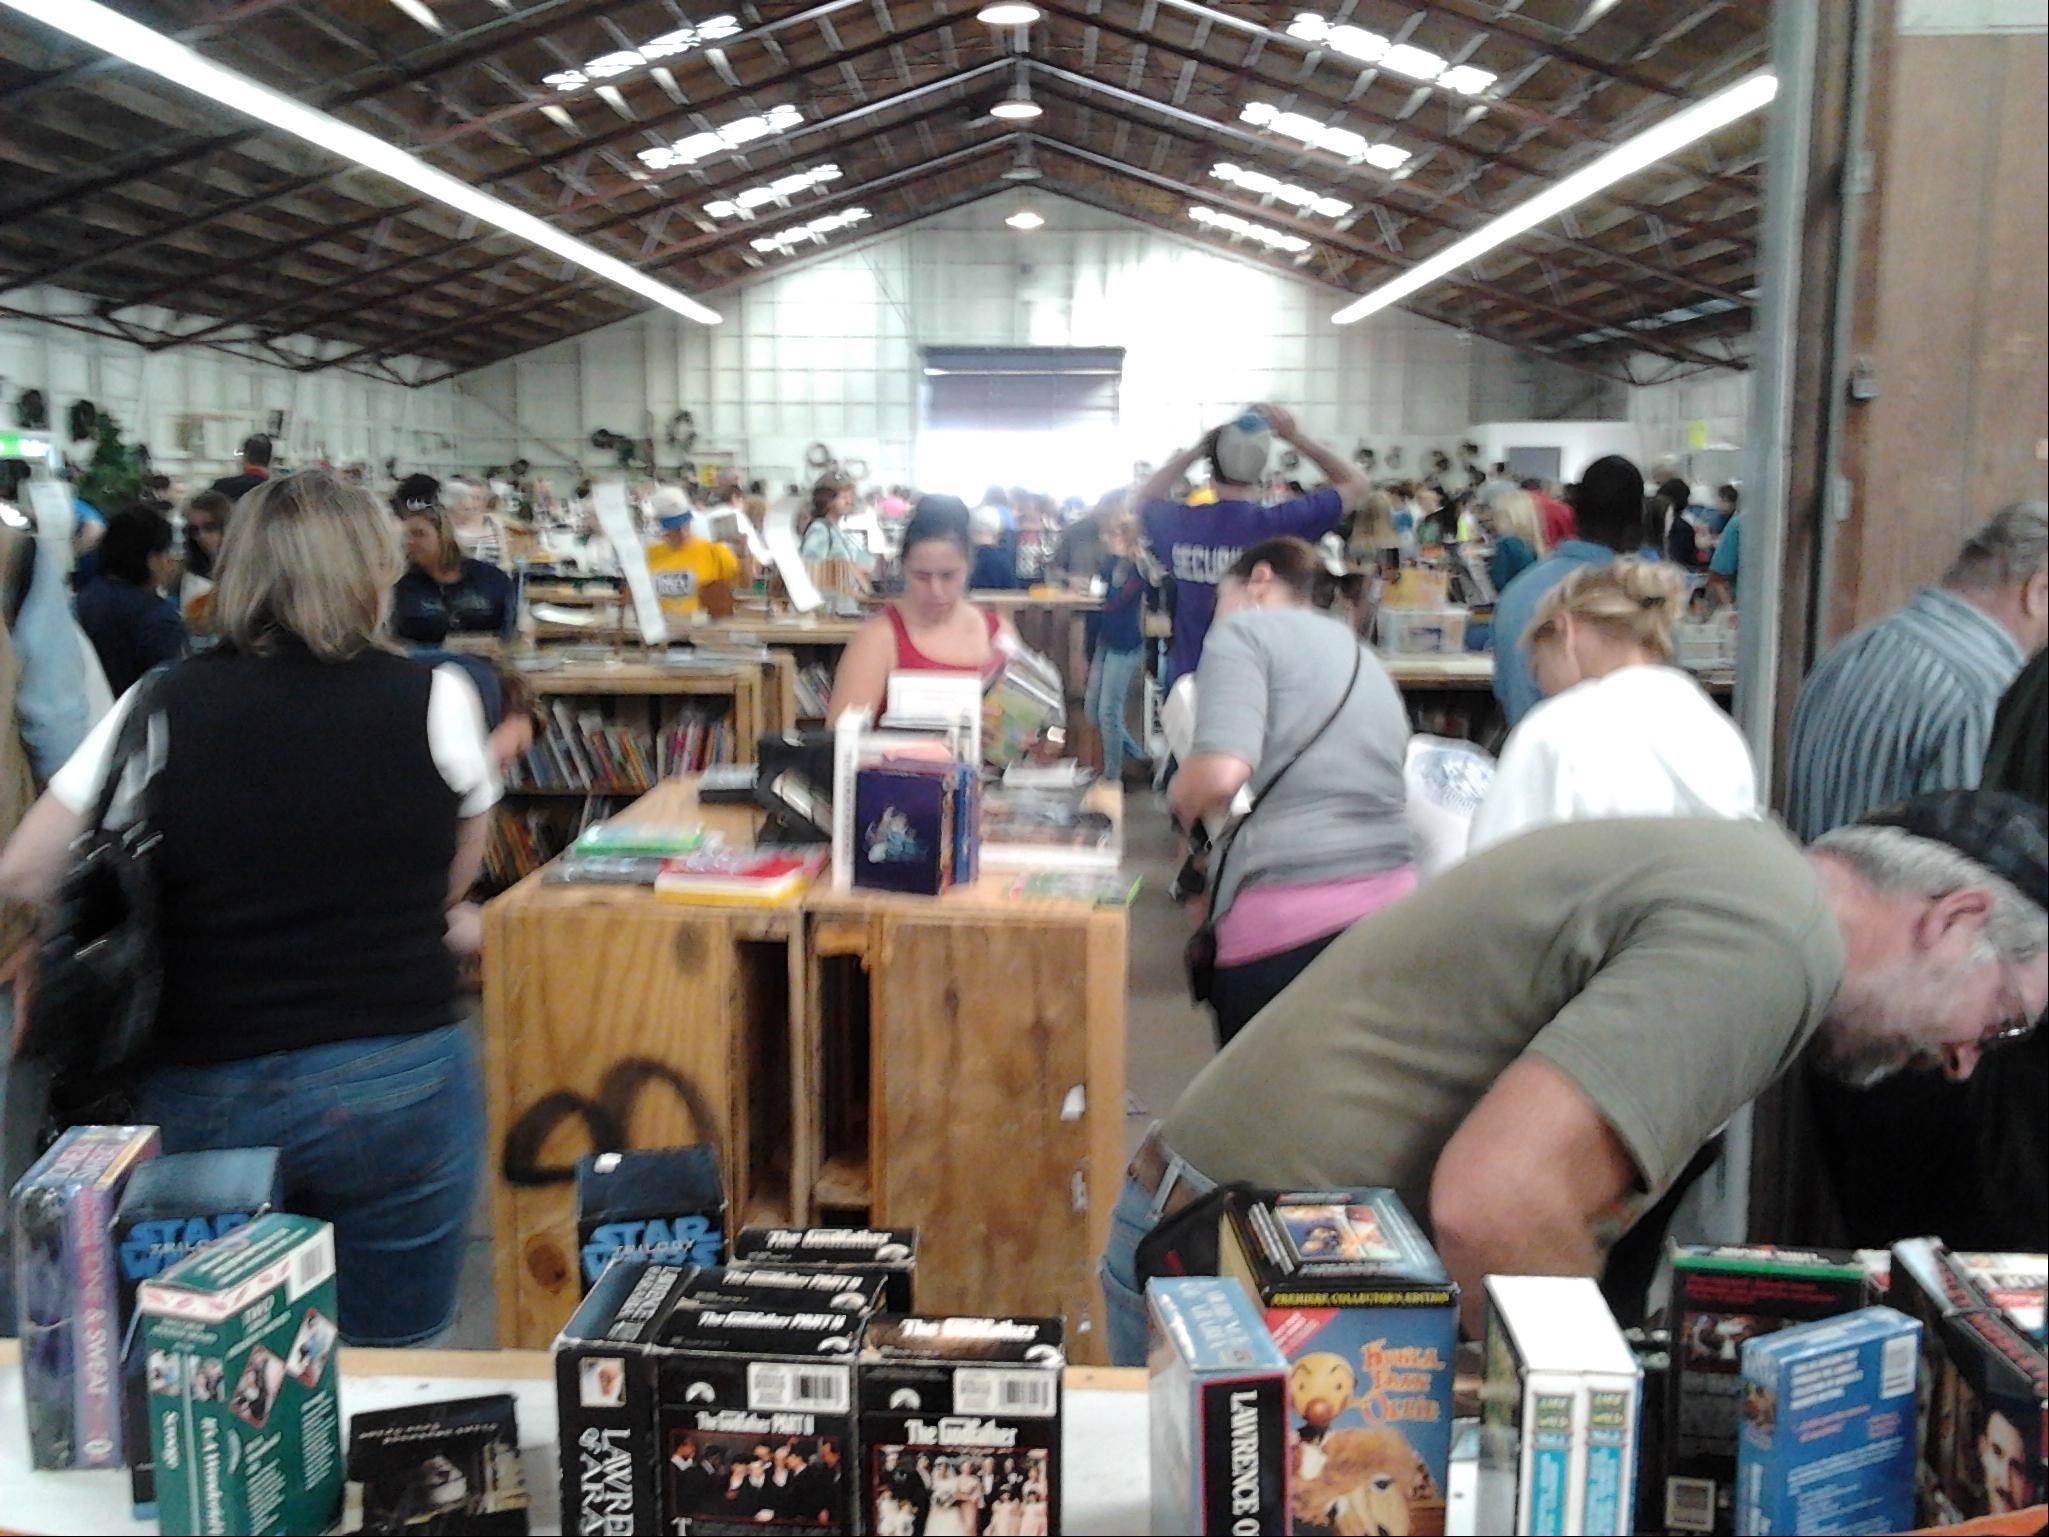 Organizers were expecting up to 10,000 visitors to attend this weekend's St. Peter Barn Sale at the Kane County Fairgrounds in St. Charles. A steady was crowd lured by inexpensive merchandise on Saturday.